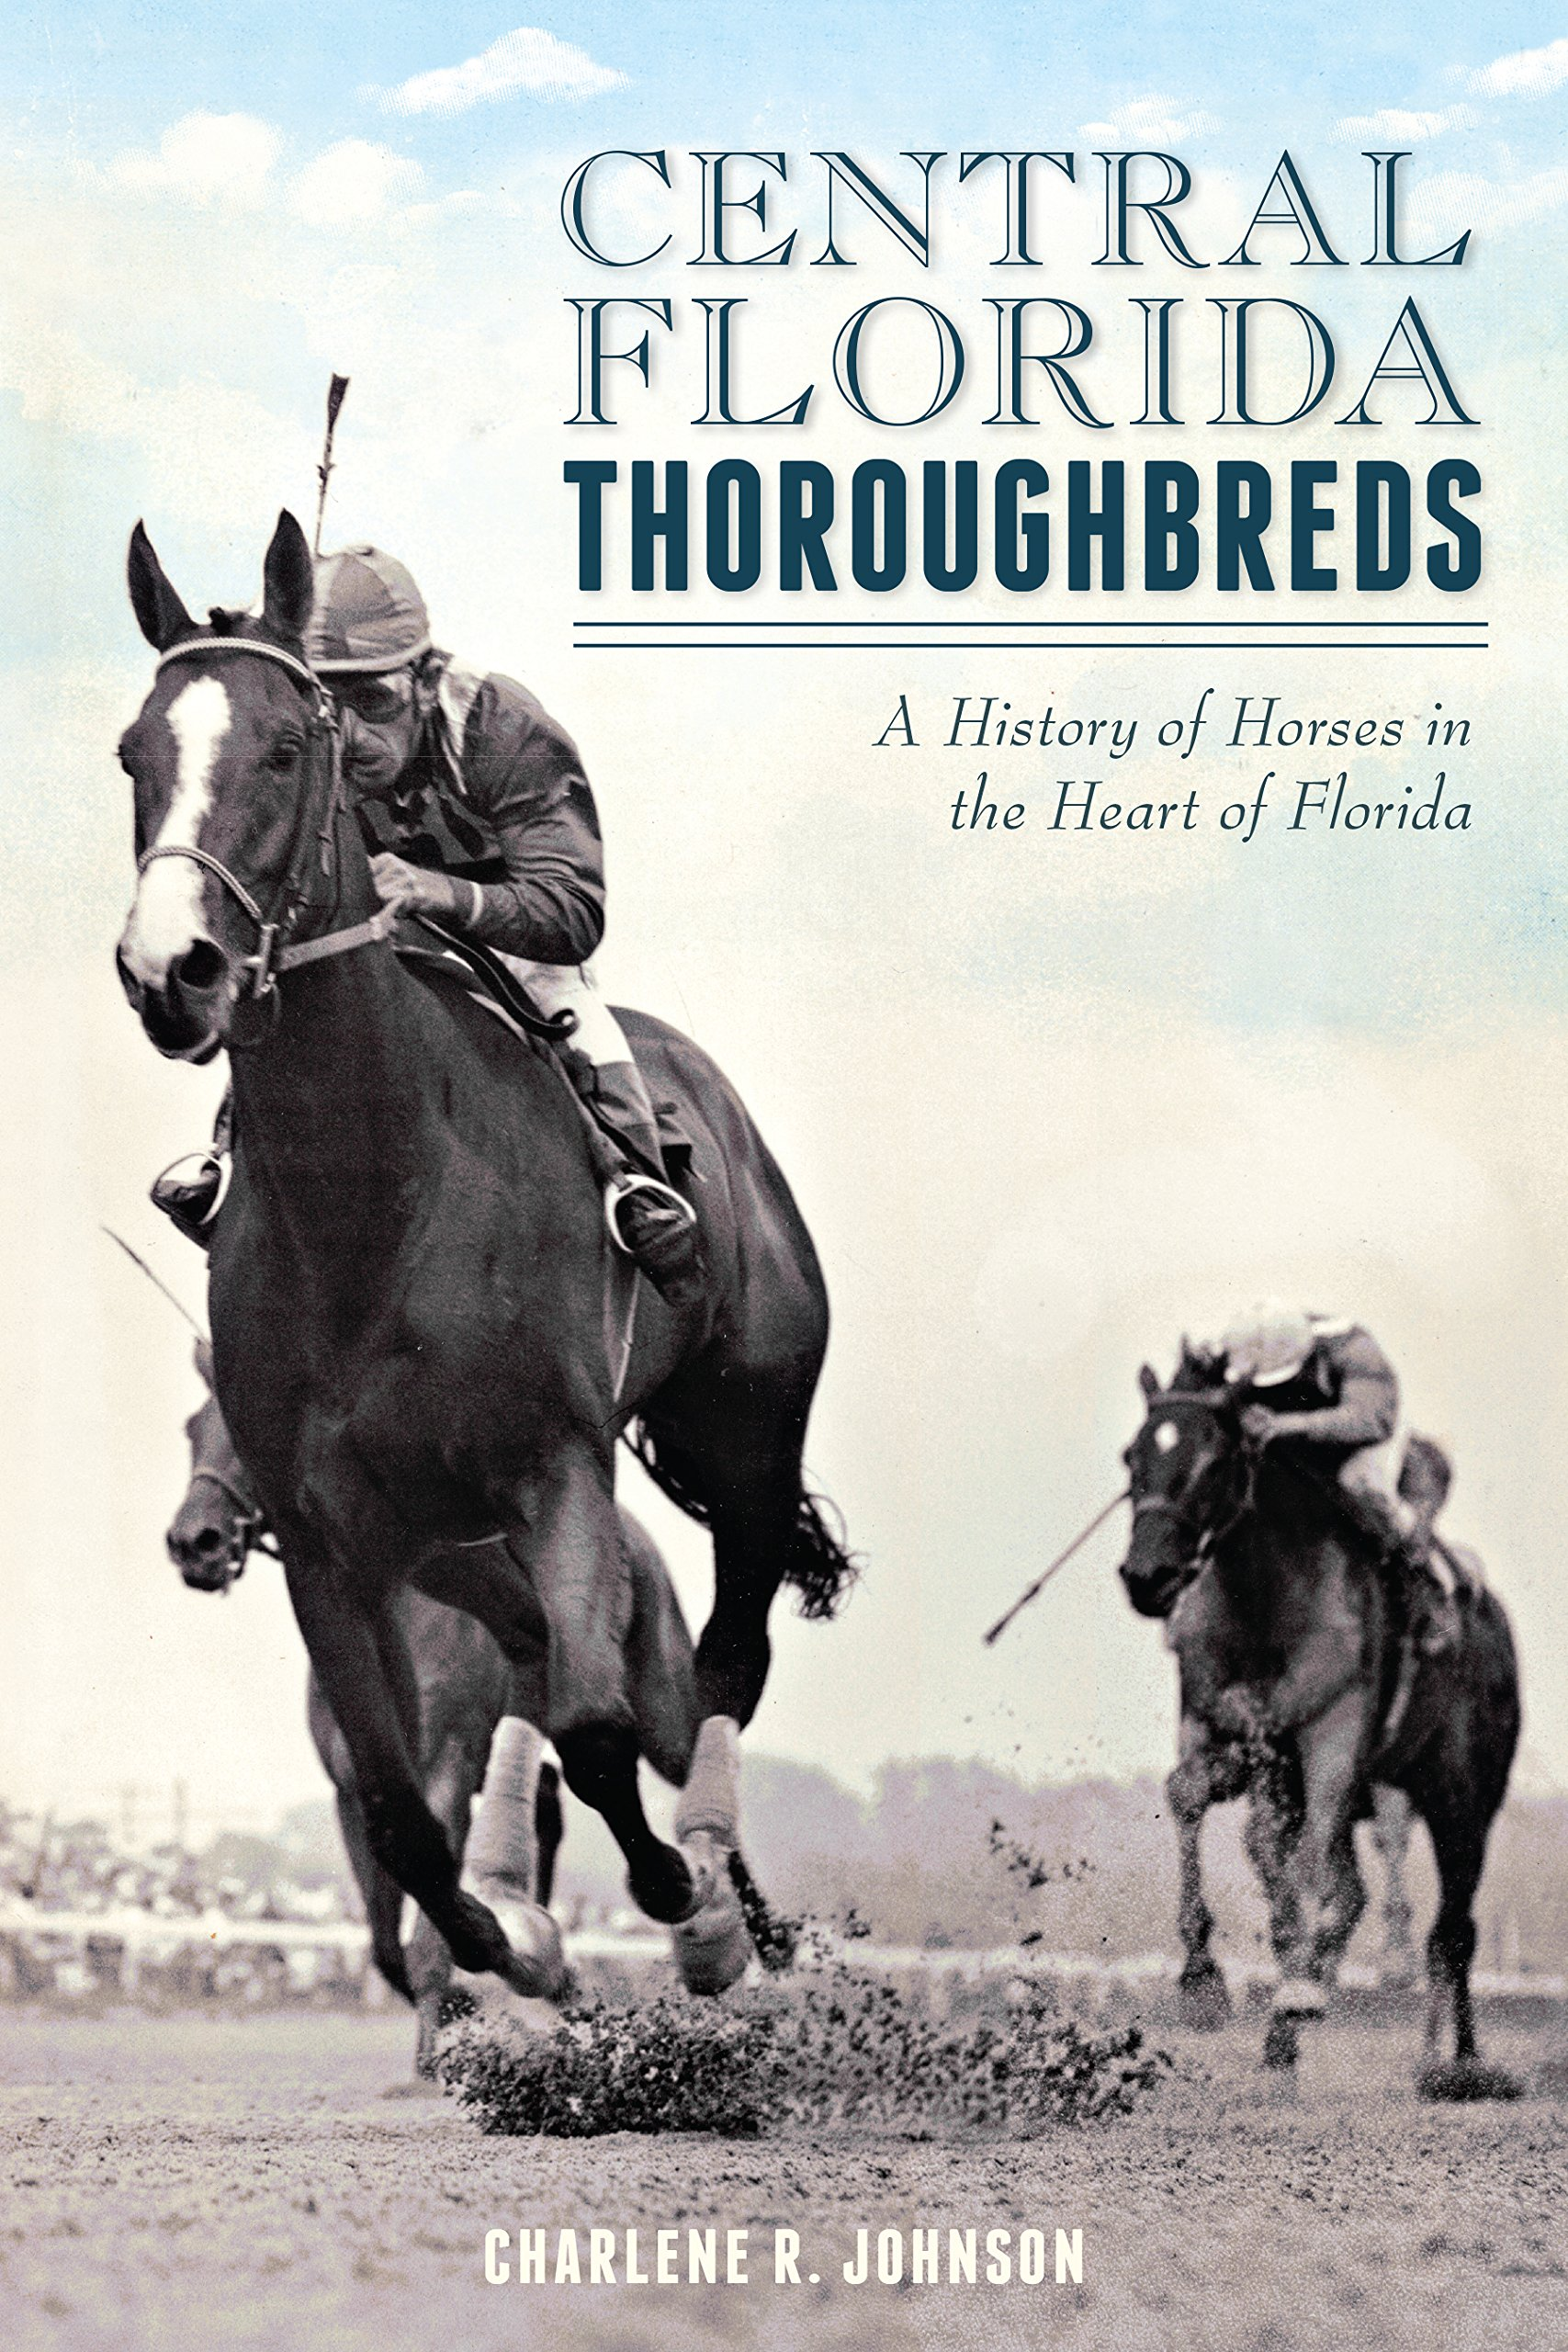 Central Florida Thoroughbreds: A History of Horses in the Heart of Florida (Sports) (English Edition)